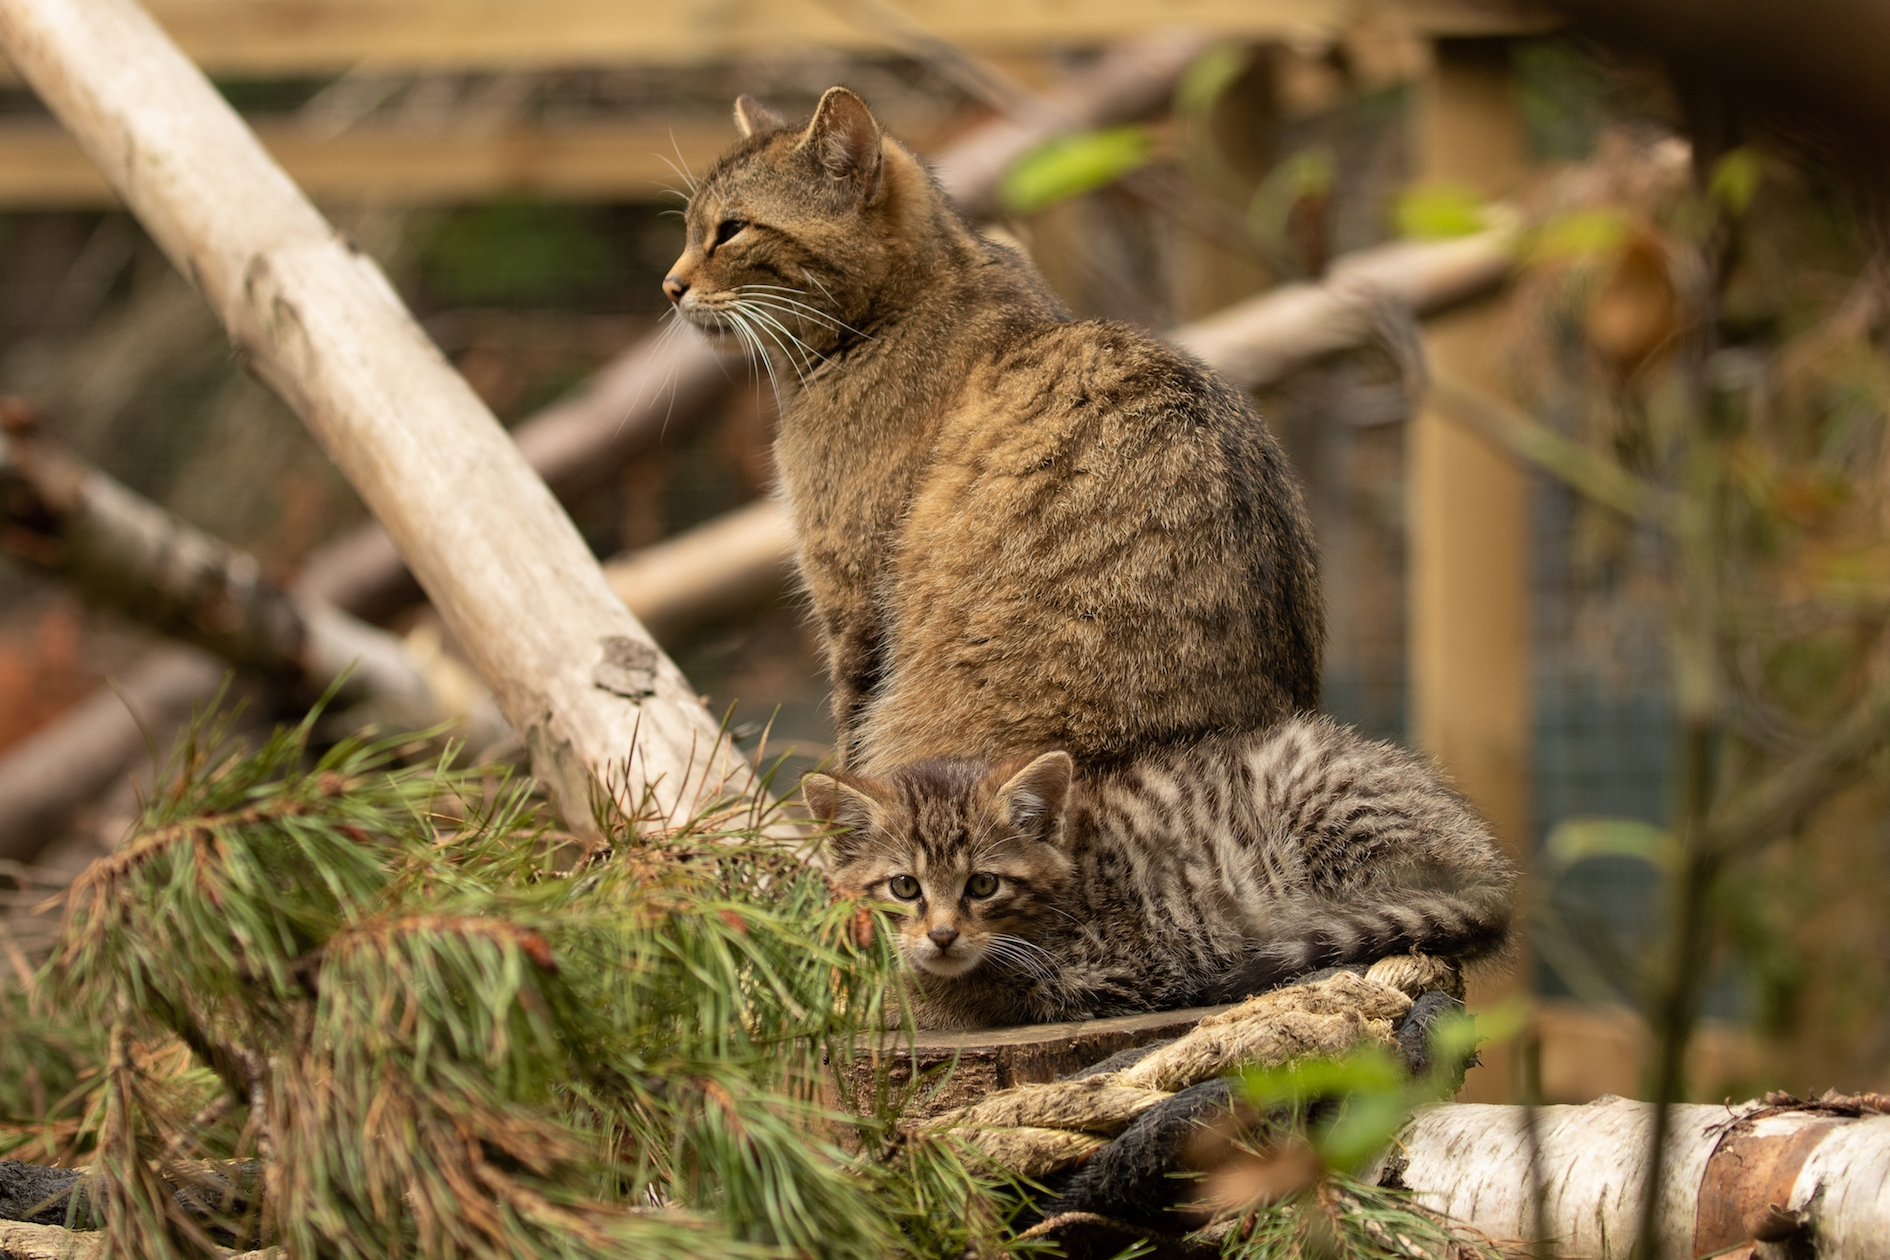 Wildcat Brora Kitten© Ben Jones